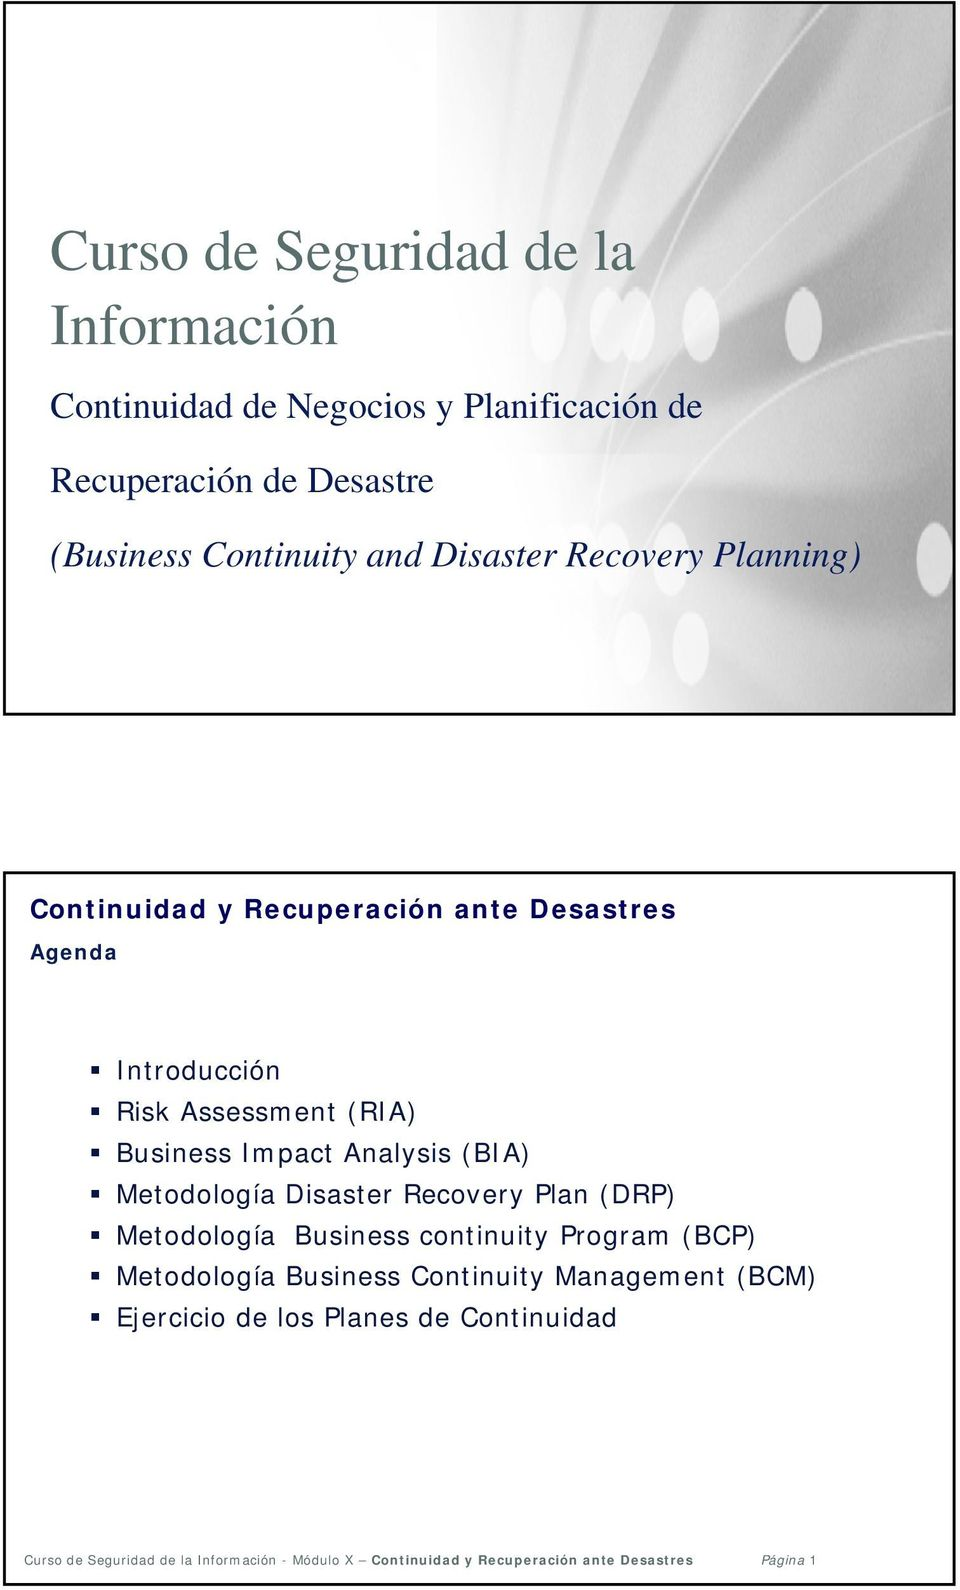 Planning) Agenda Introducción Risk Assessment (RIA) Business Impact Analysis (BIA) Metodología Disaster Recovery Plan (DRP) Metodología Business